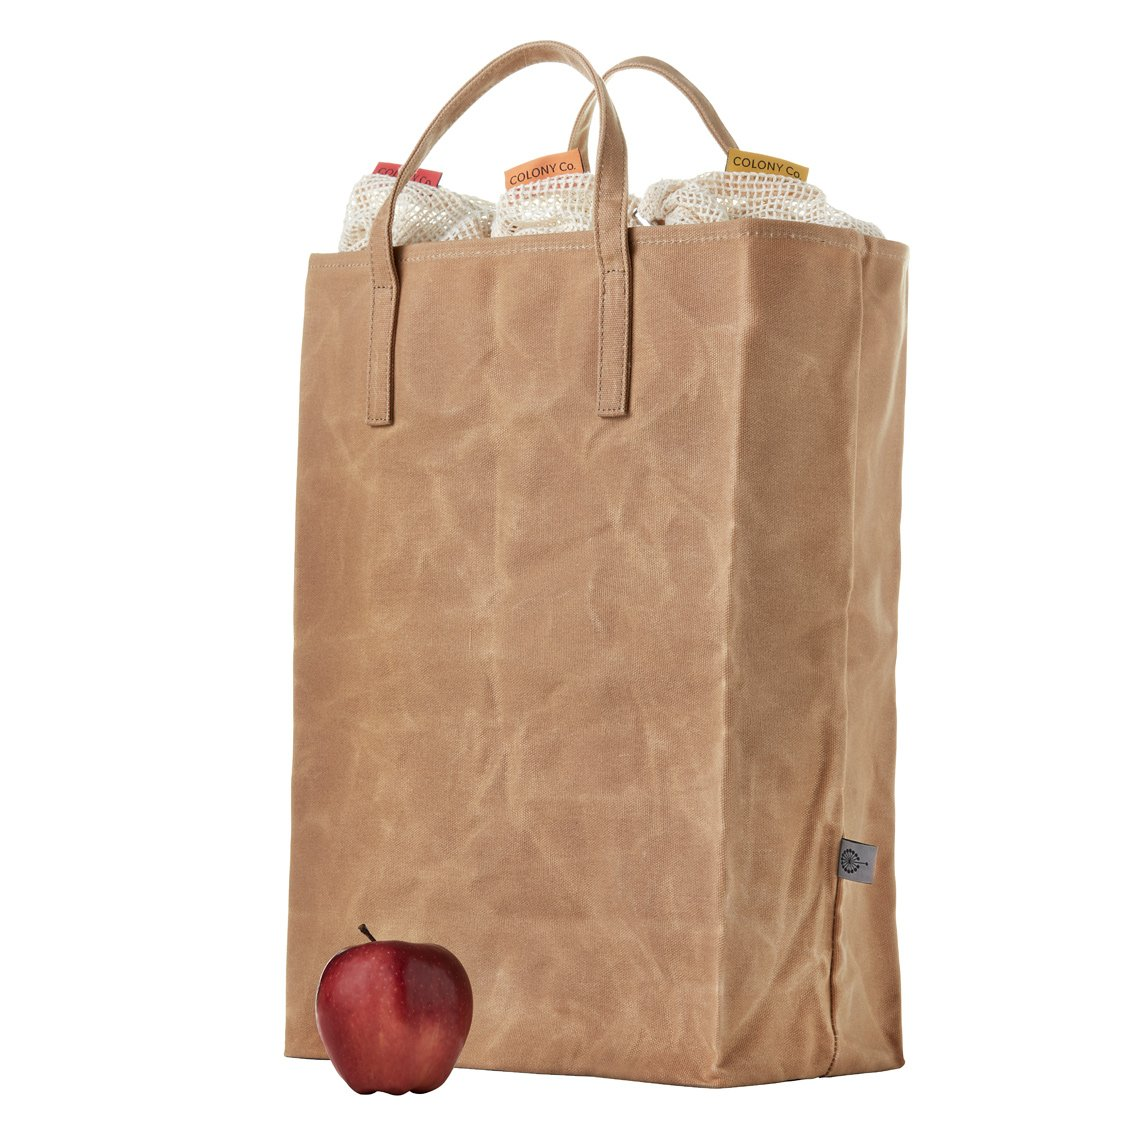 Reusable Grocery Bag | Waxed Canvas | Heavy-Duty | Biodegradable | Foldable | Brown by COLONY CO (Image #2)